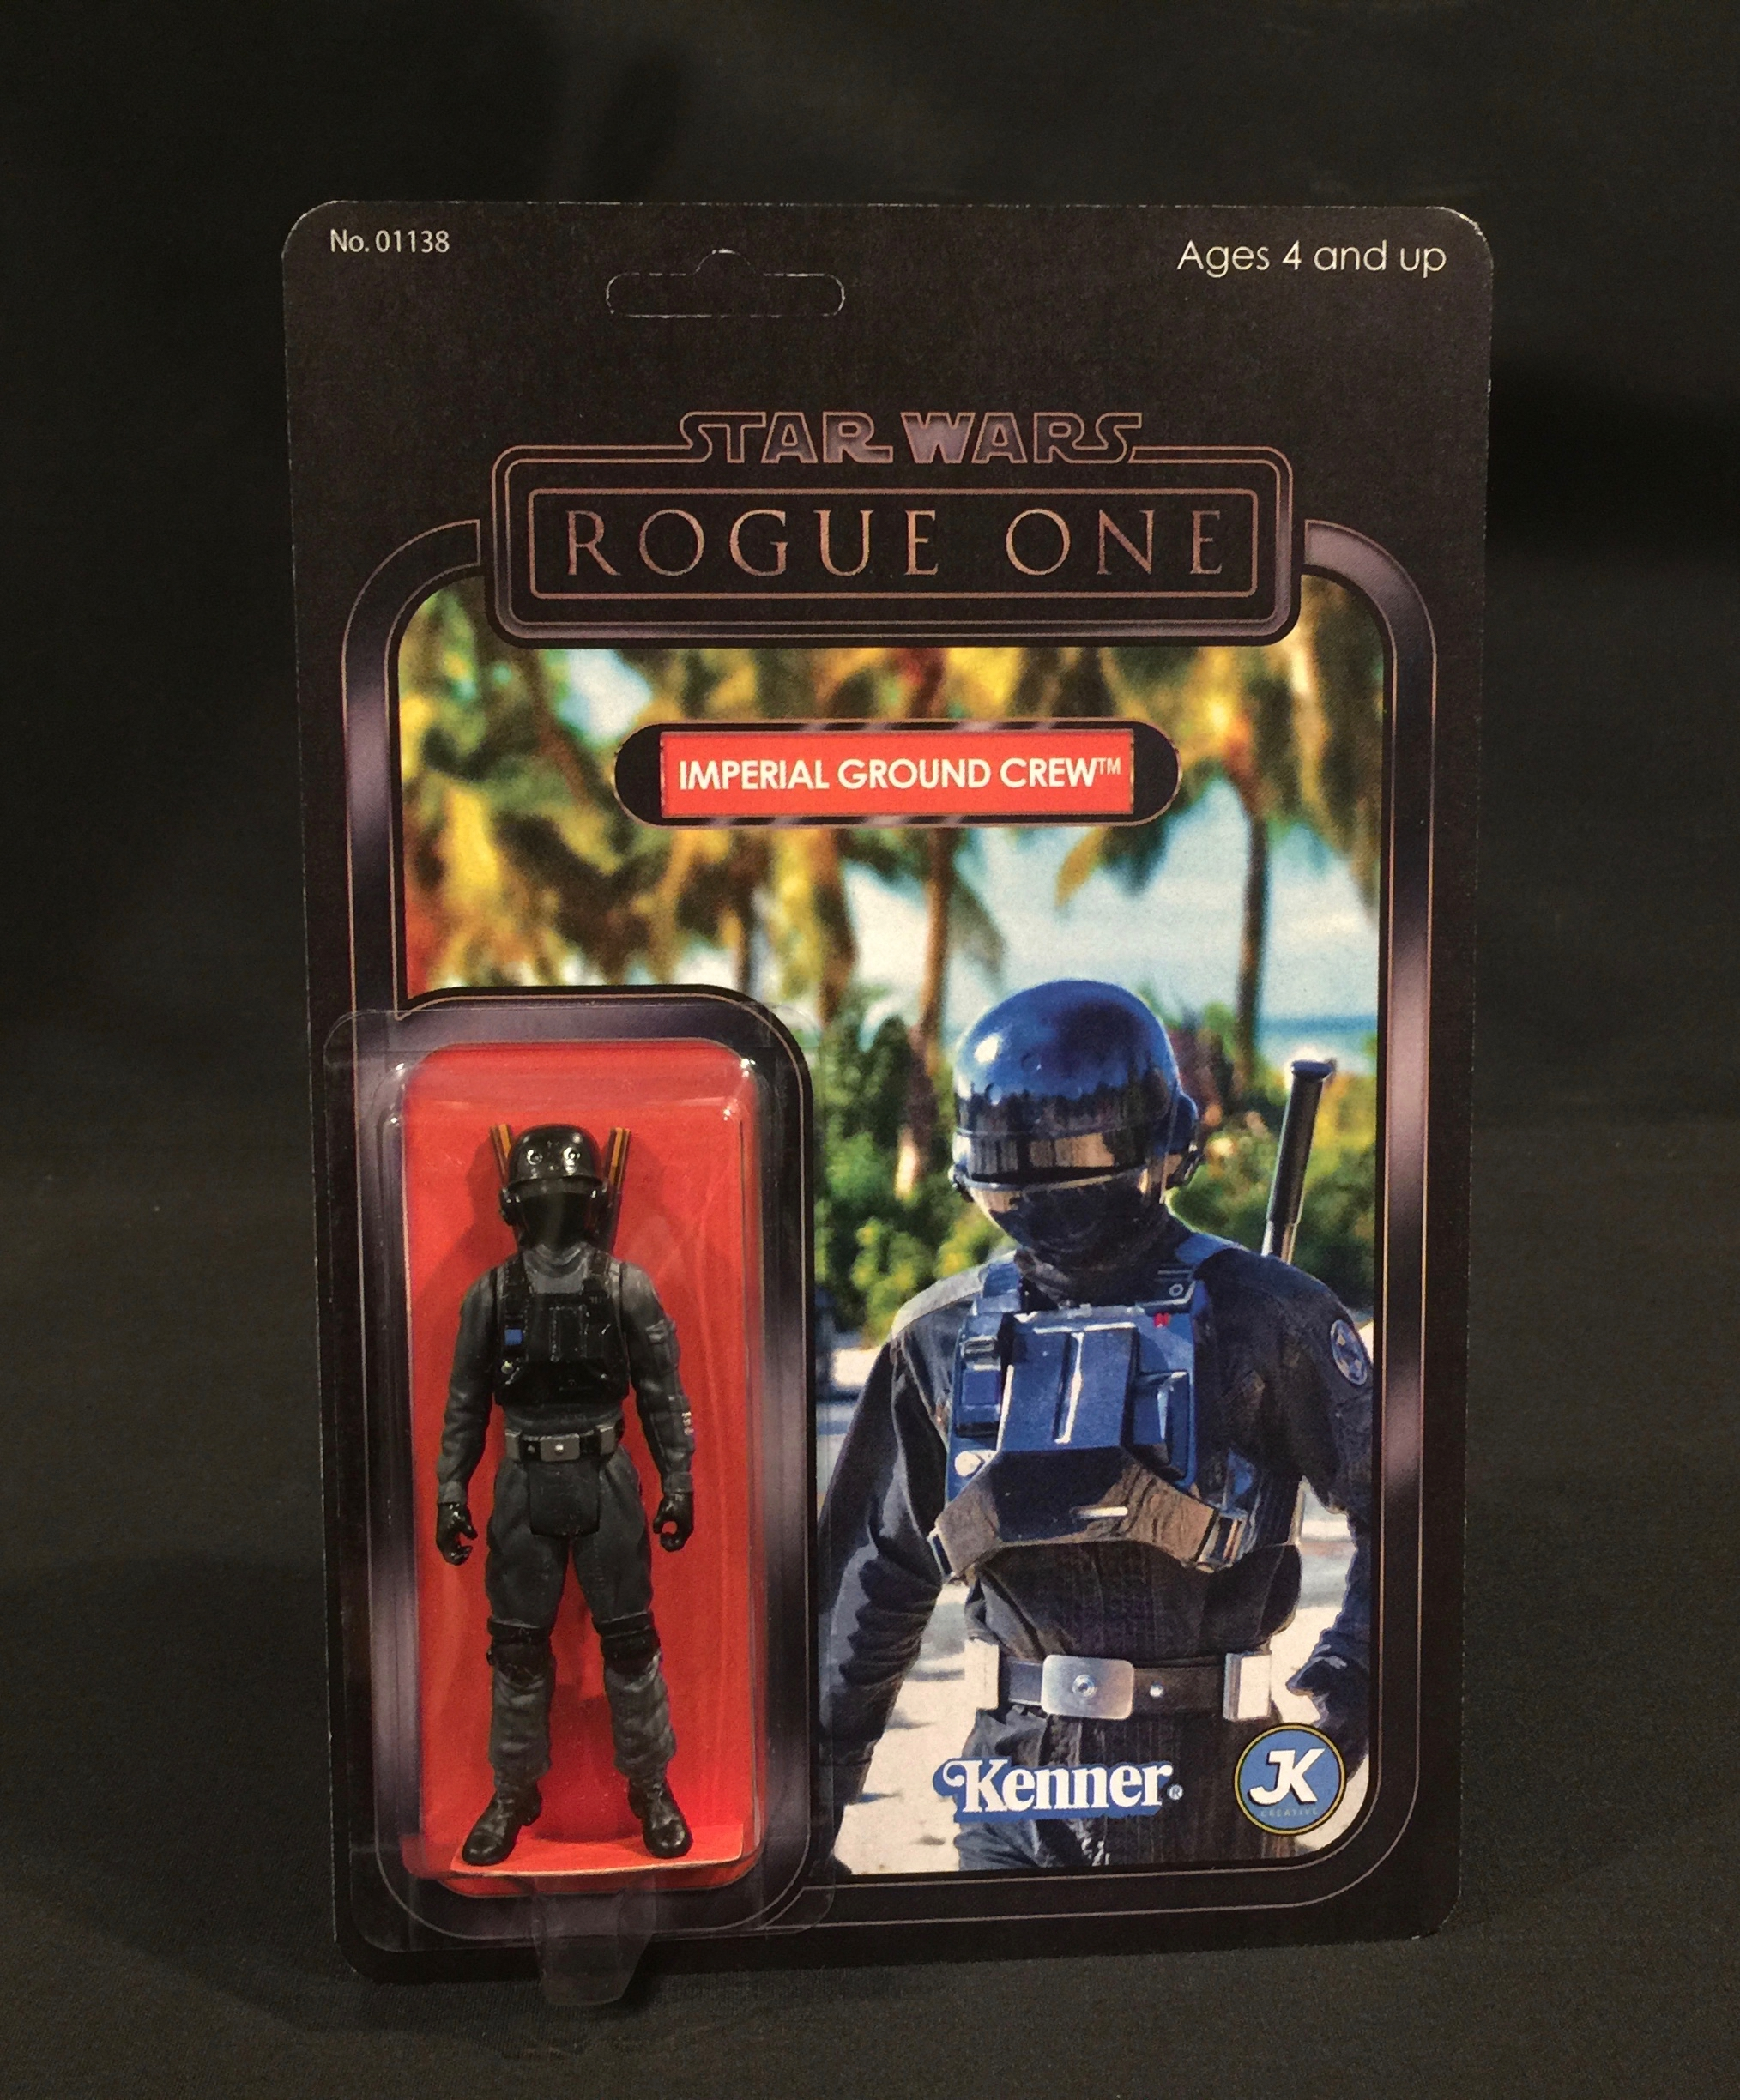 Imperial Ground Crew - Rogue One